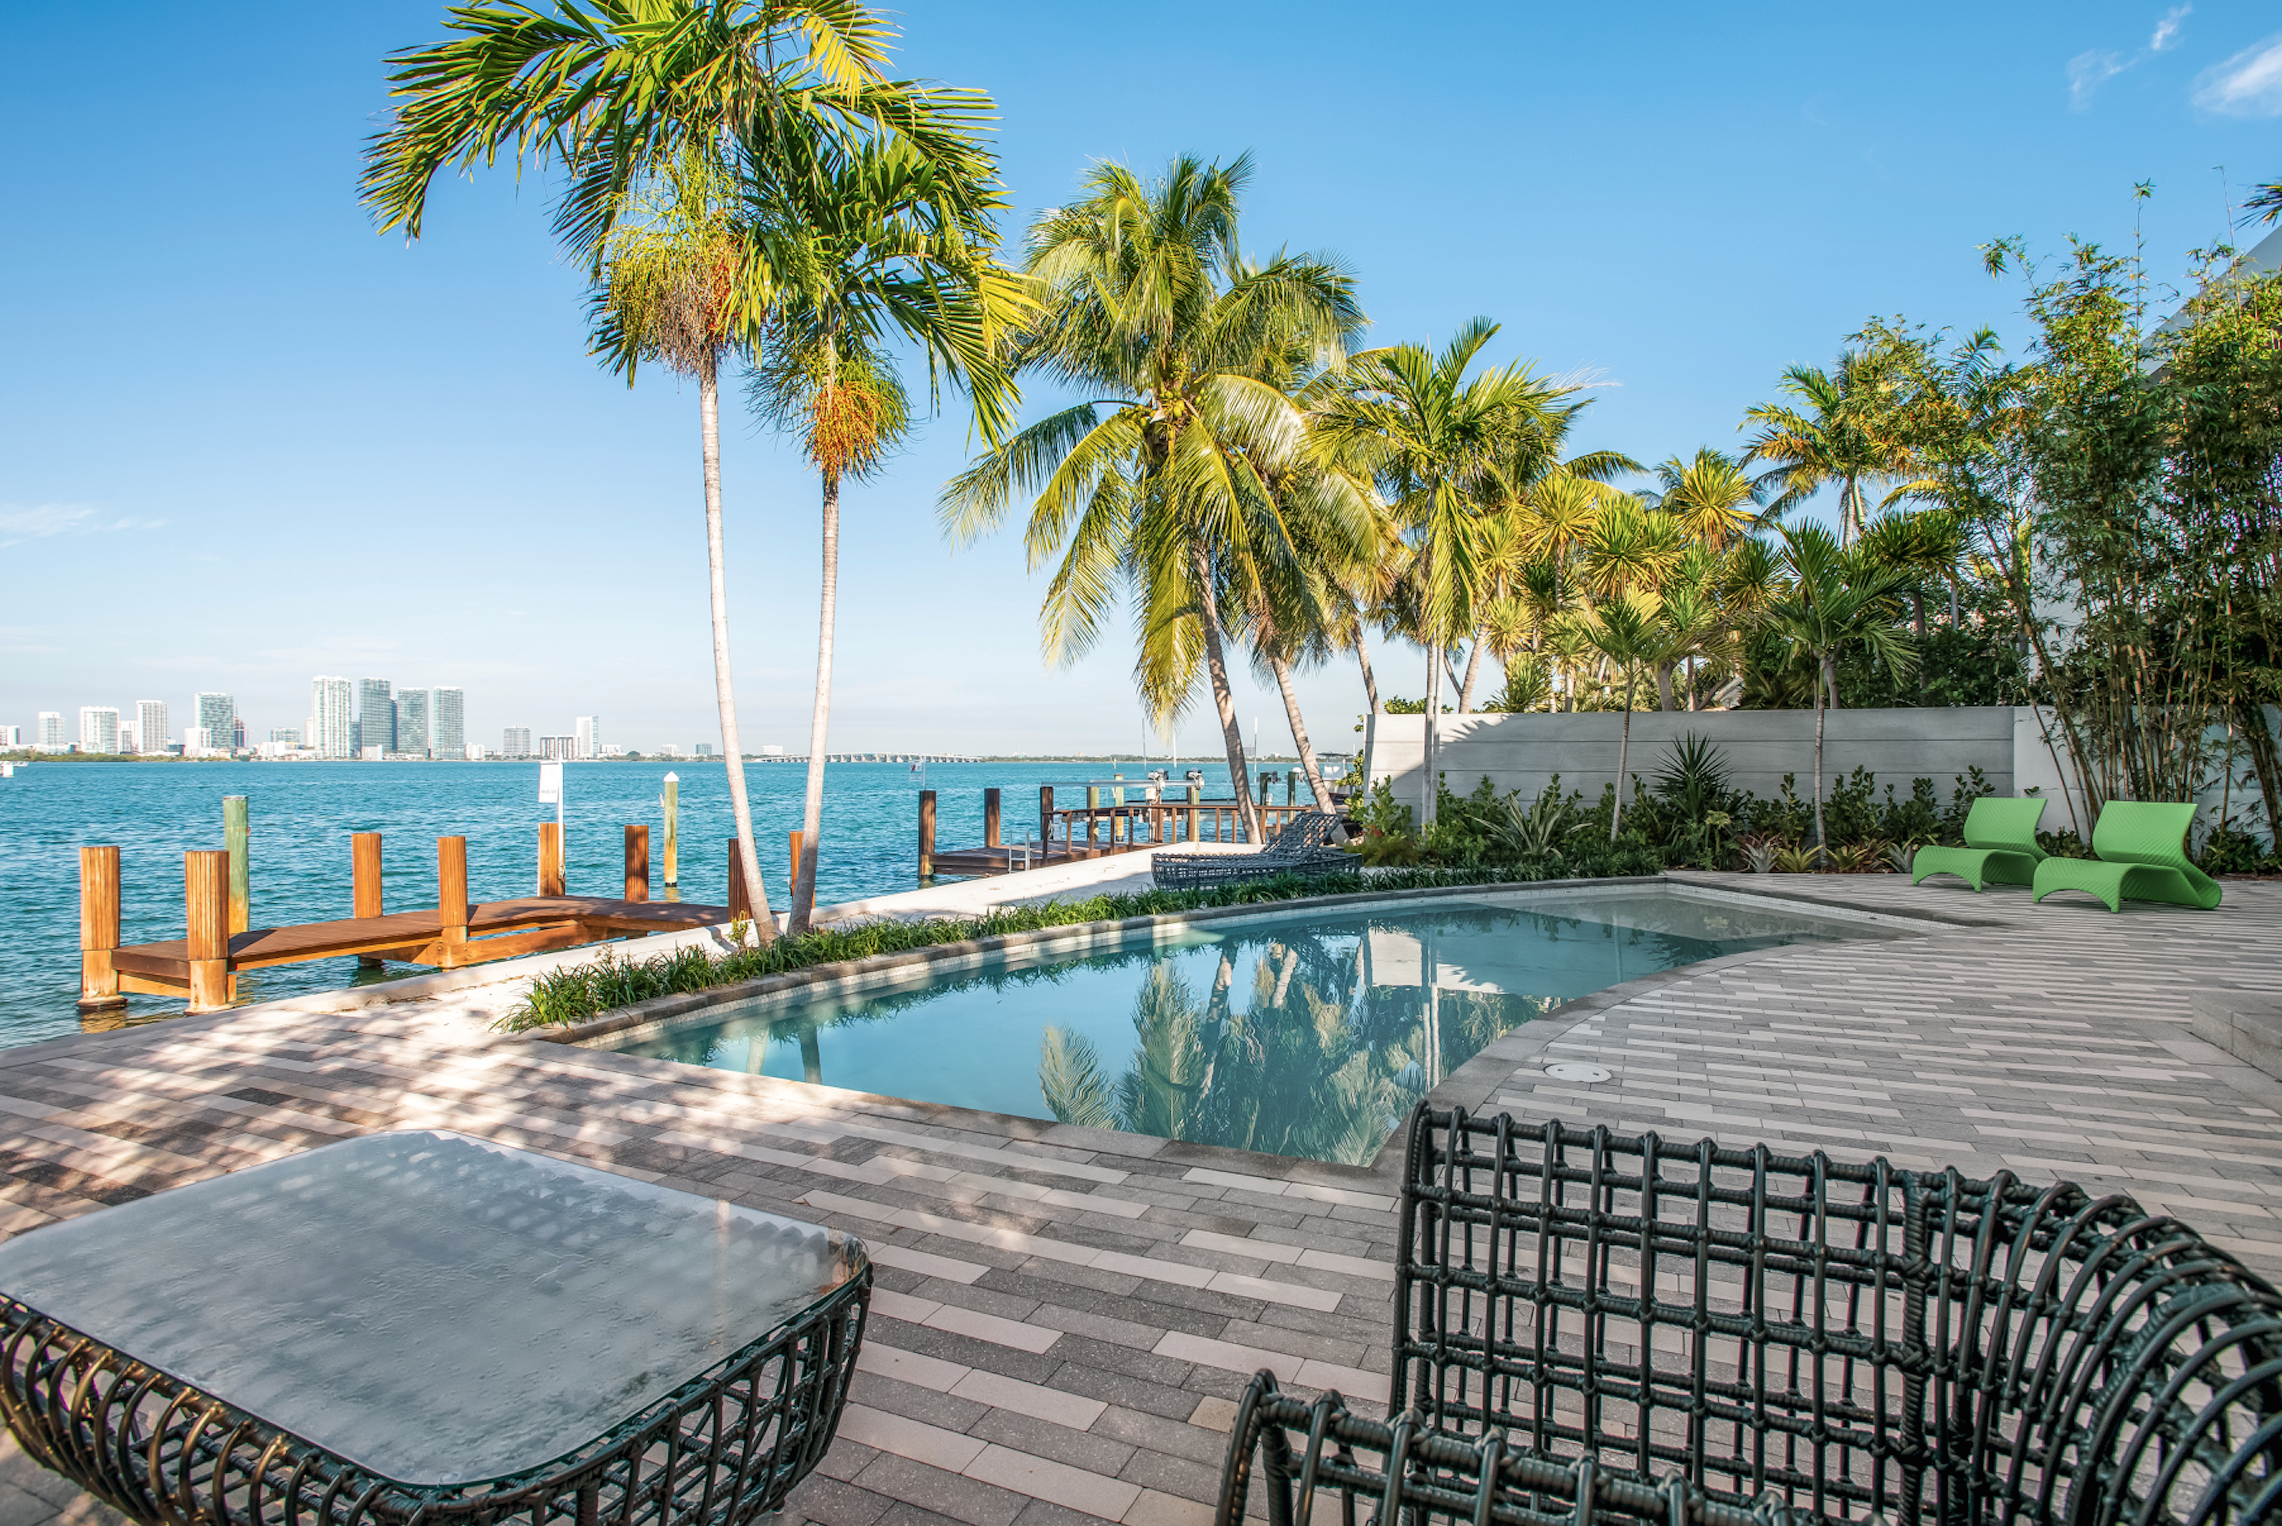 Miami Developer Avra Jain, Founder Of The Vagabond Group, Sells Venetian Island Home For $7.5 Million